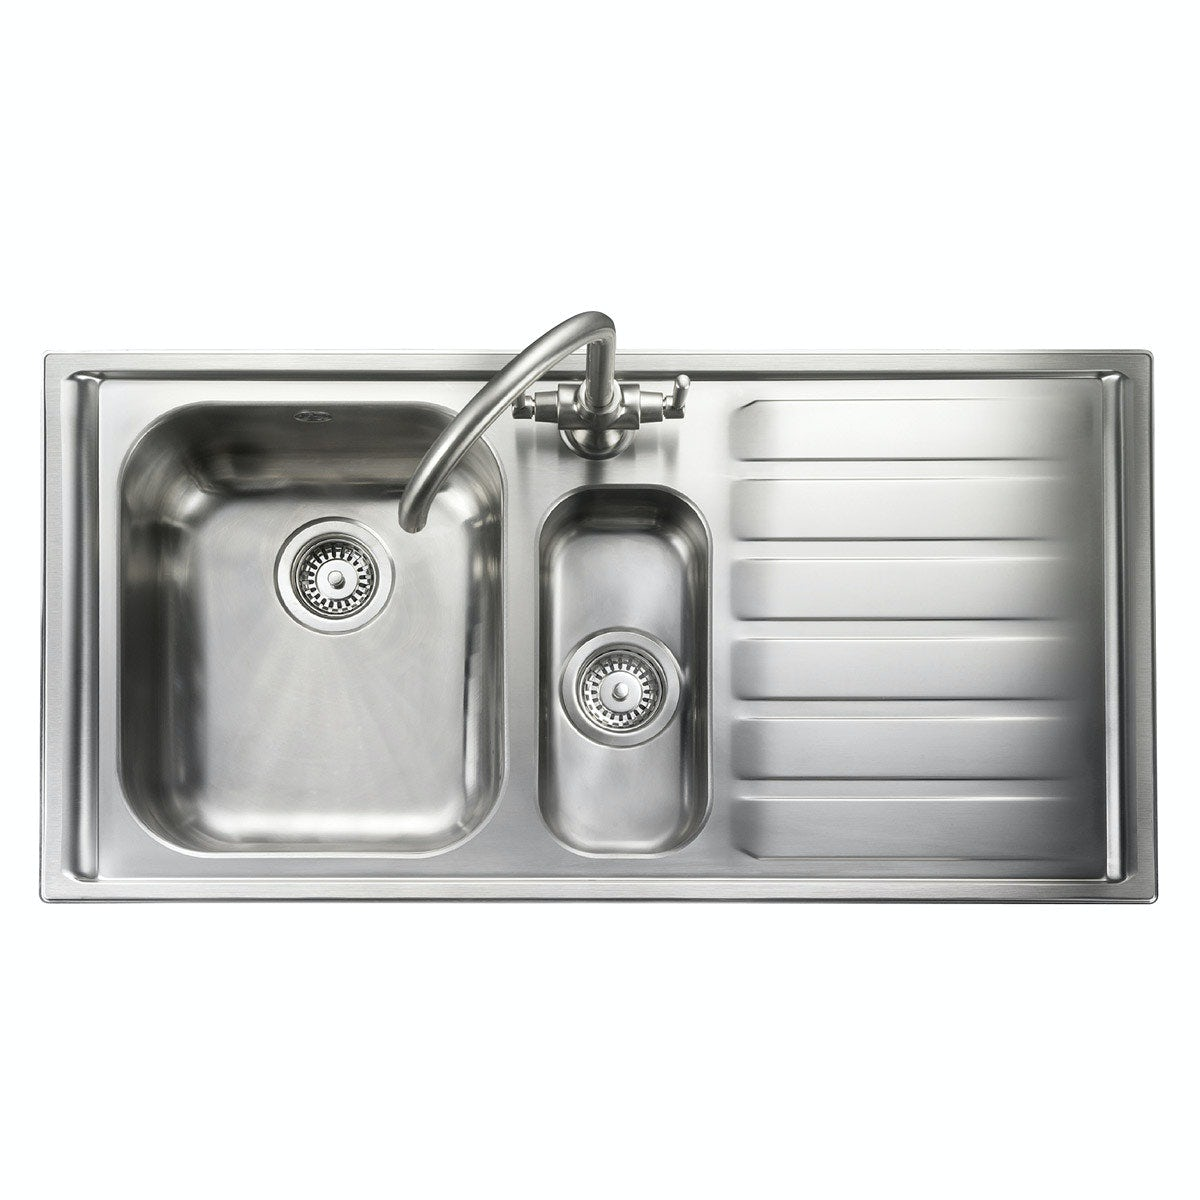 Kitchen Sink Waste Kit: Rangemaster Manhattan 1.5 Bowl Right Handed Kitchen Sink